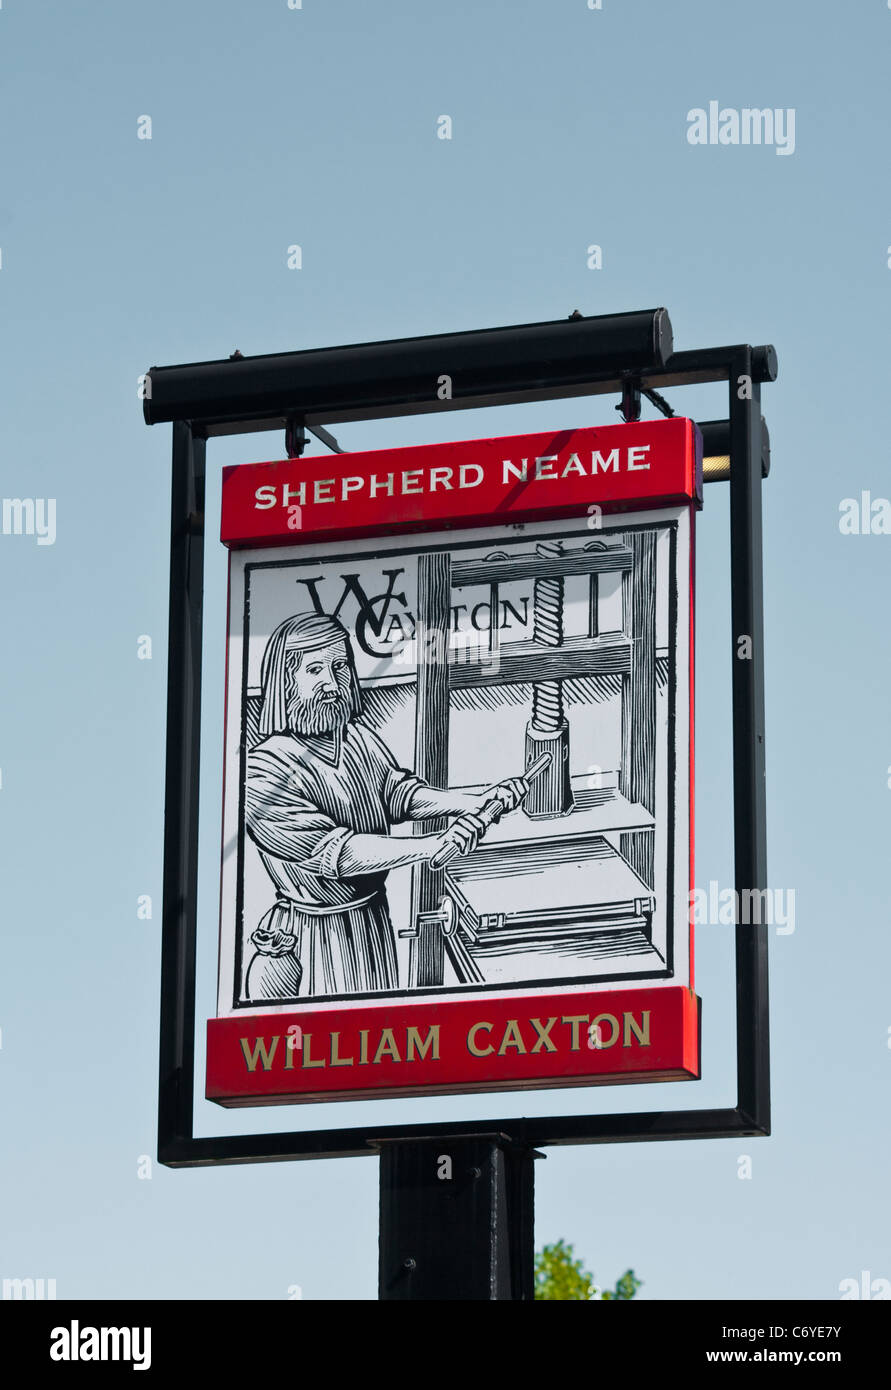 The William Caxton Shepherd Neame Pub Sign UK Pubs Signs - Stock Image